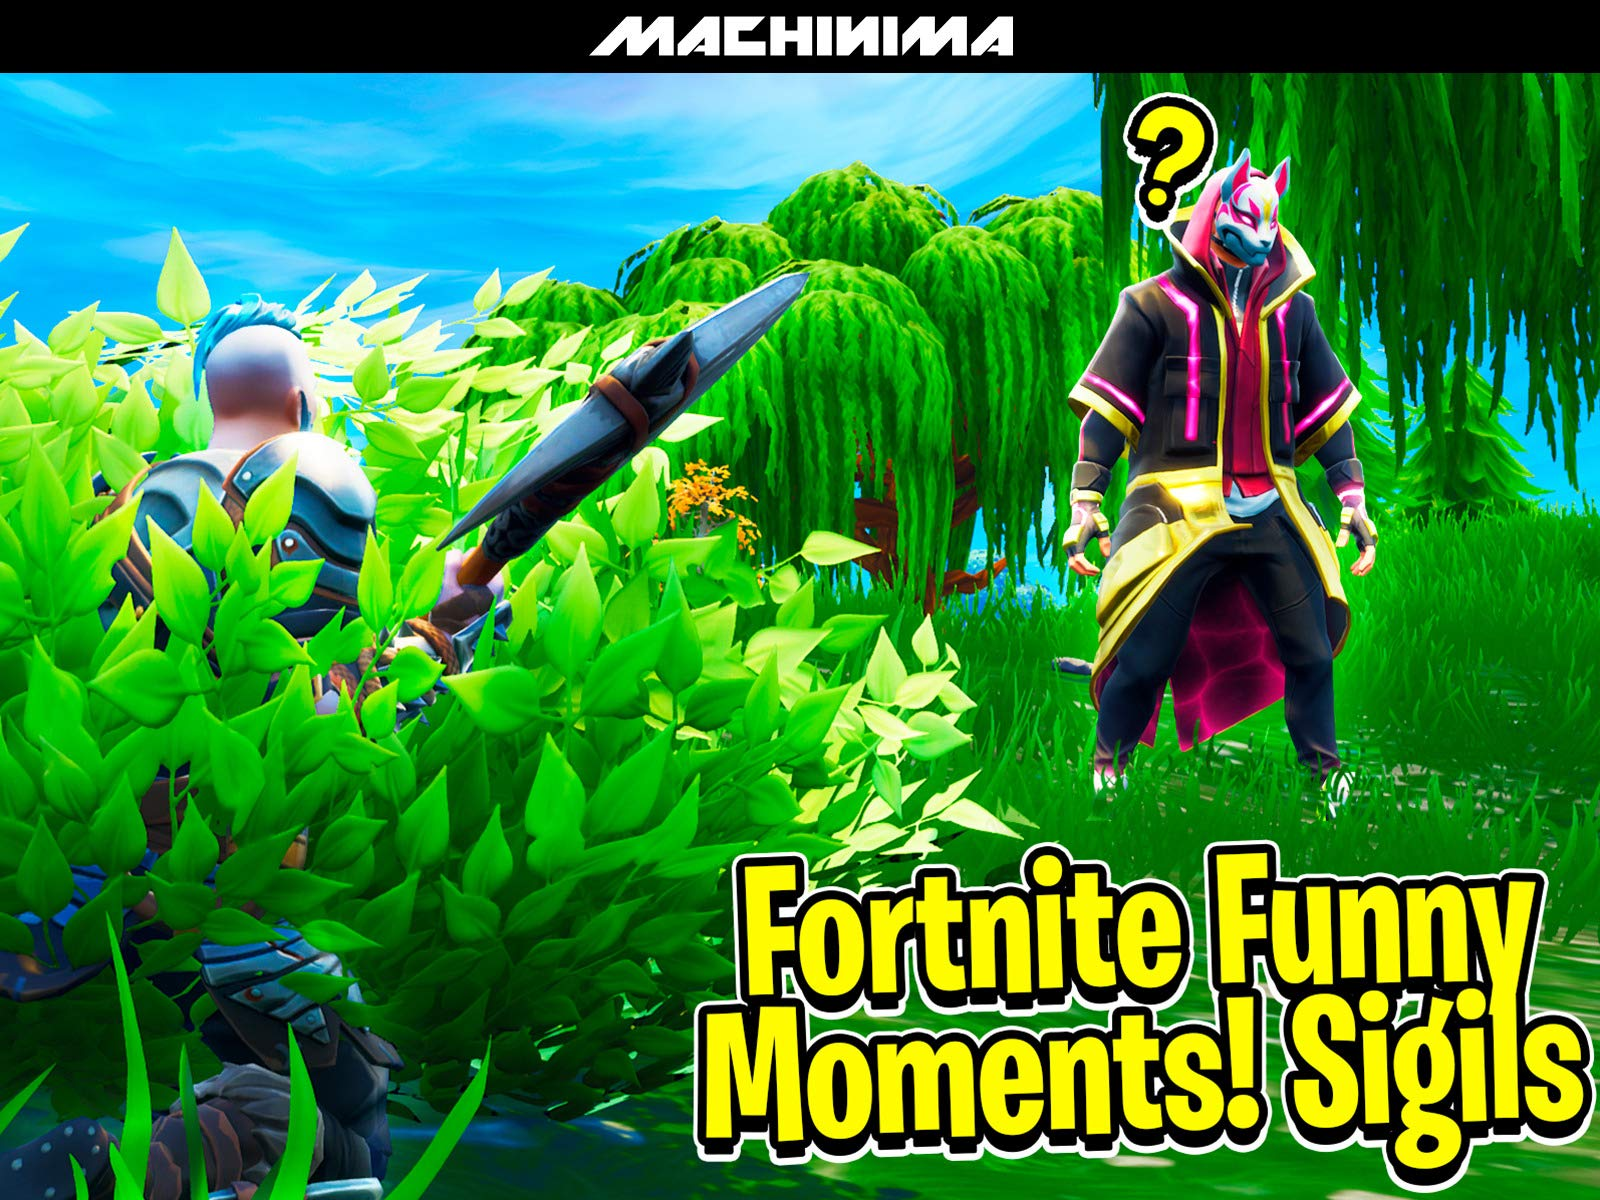 Amazon.com: Watch Clip: Fortnite Funny Moments (Sigils ...